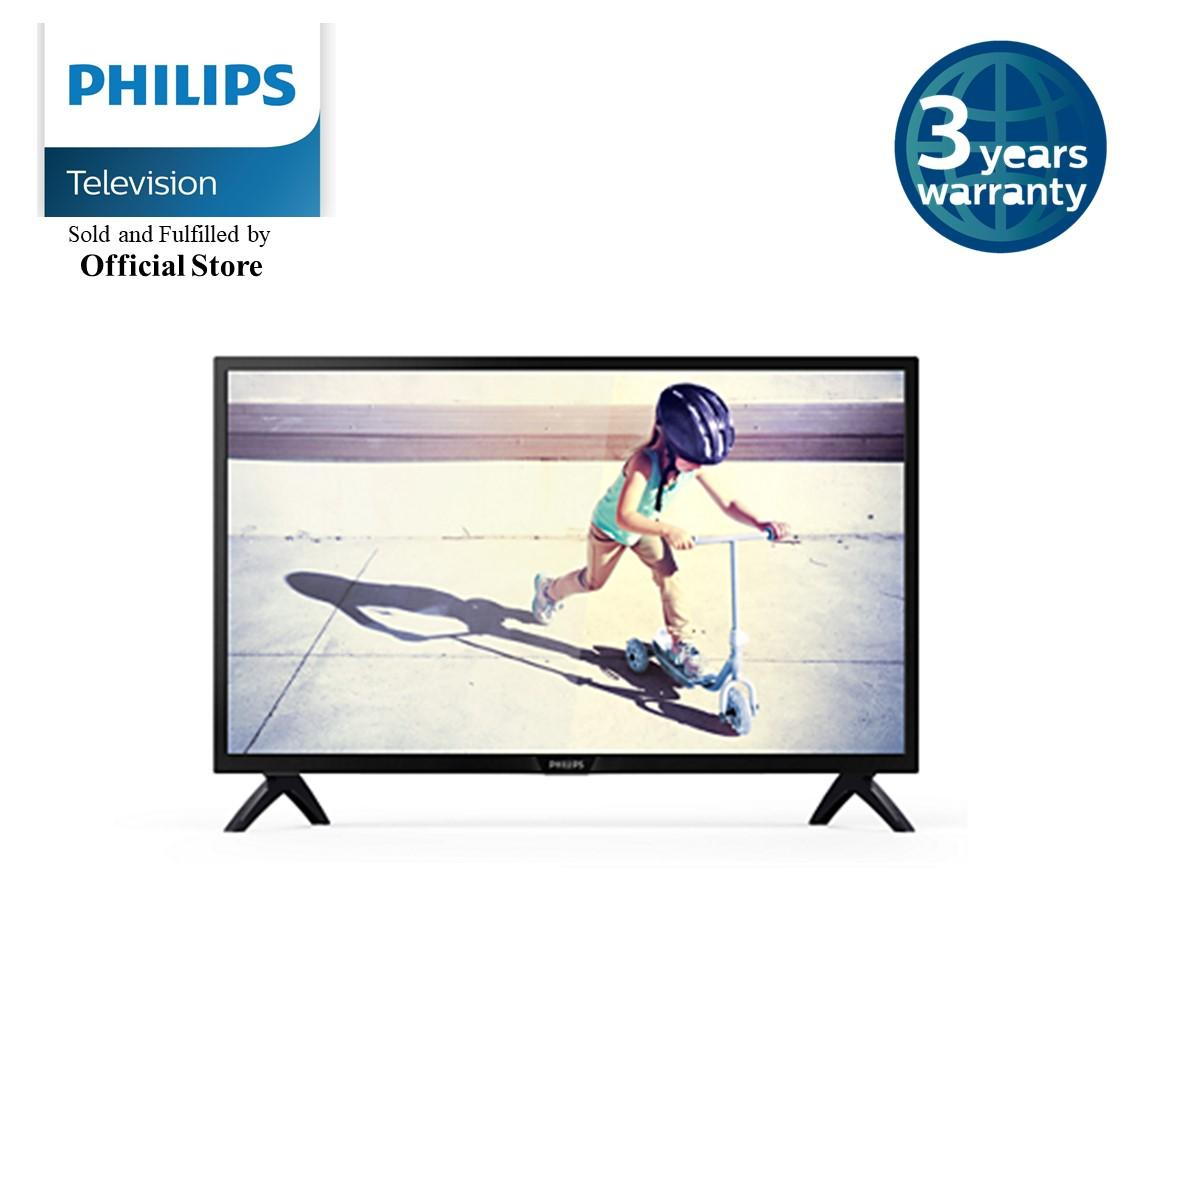 Philips Slim Led Tv 32pht4002/98 By Philips Audio Visual